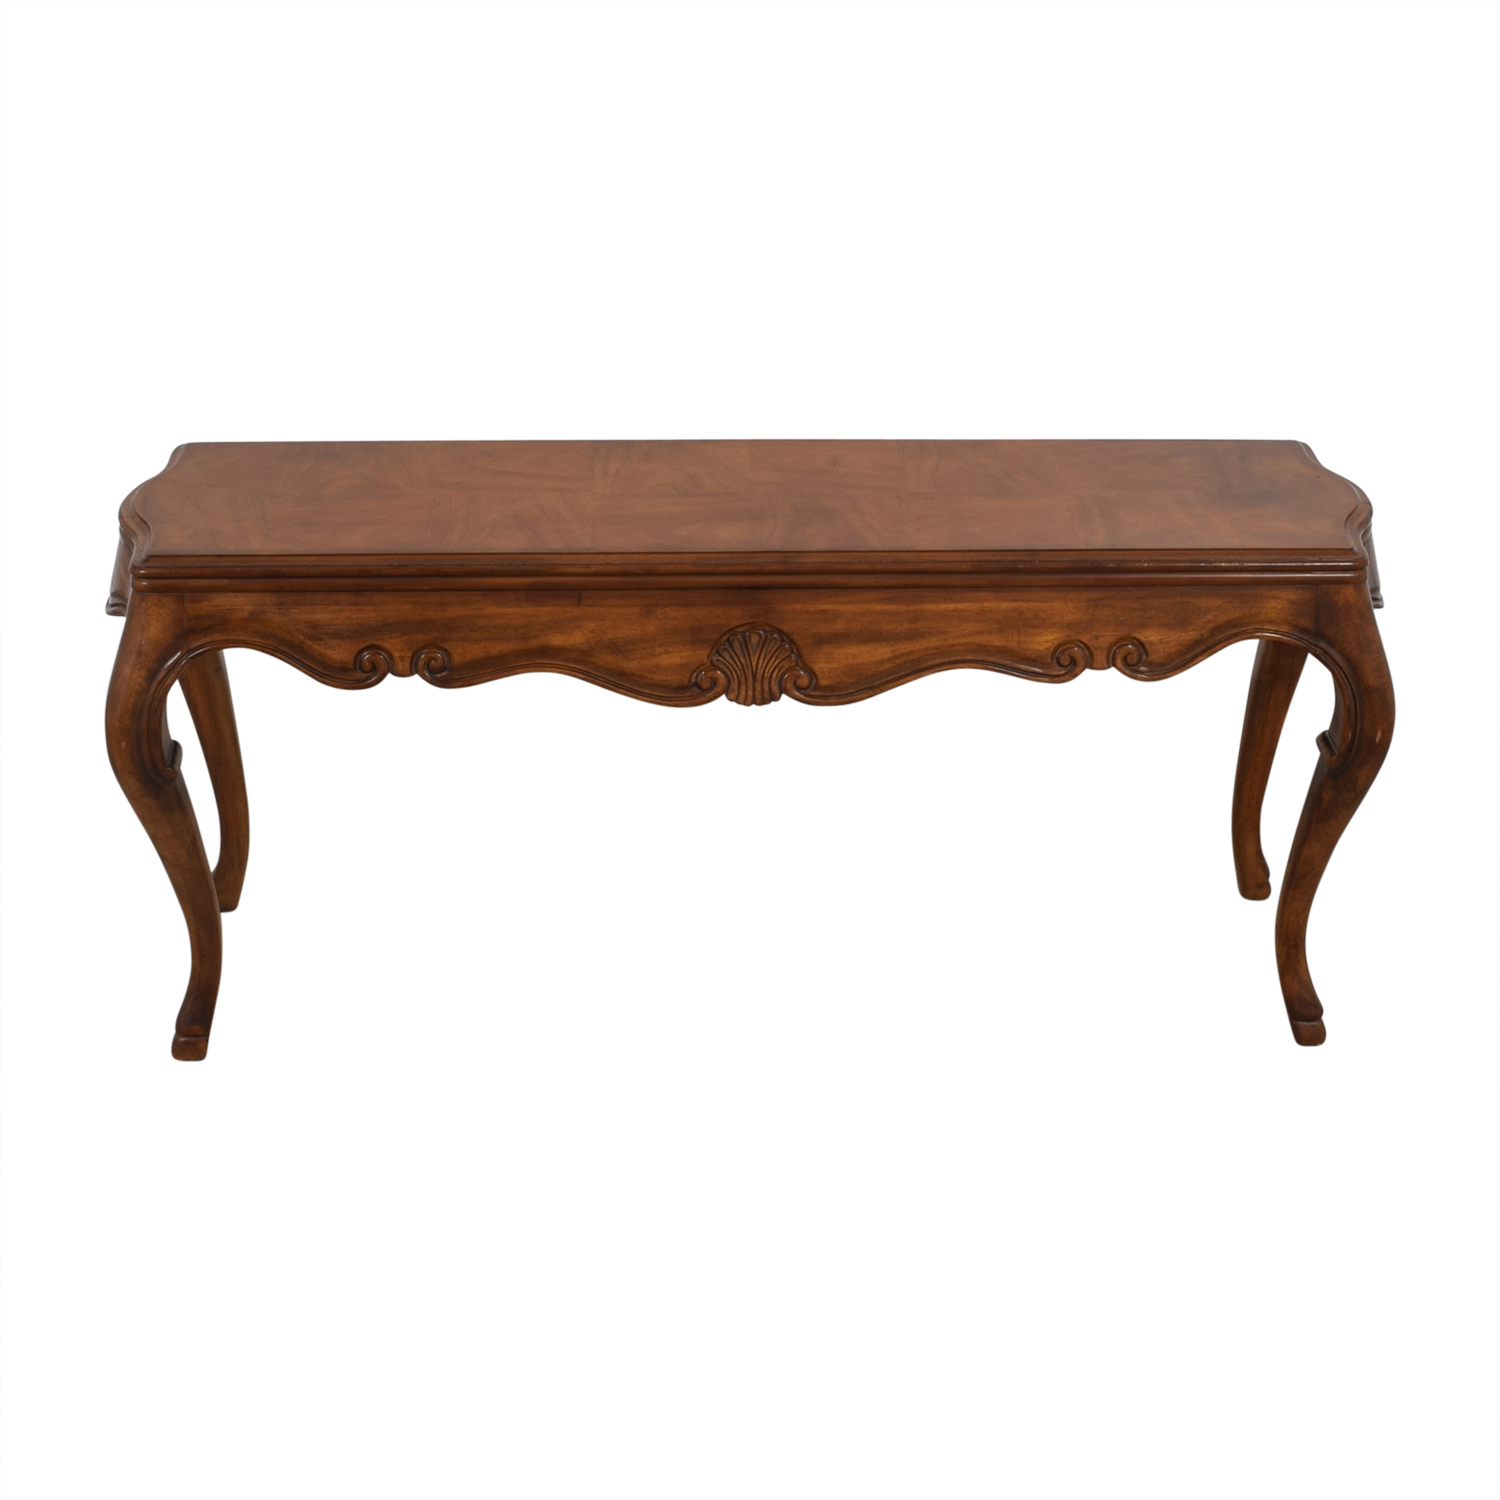 Used Ethan Allen Coffee Tables: Used Sofa Table Sofa Cool Ethan Allen Table Design Cherry